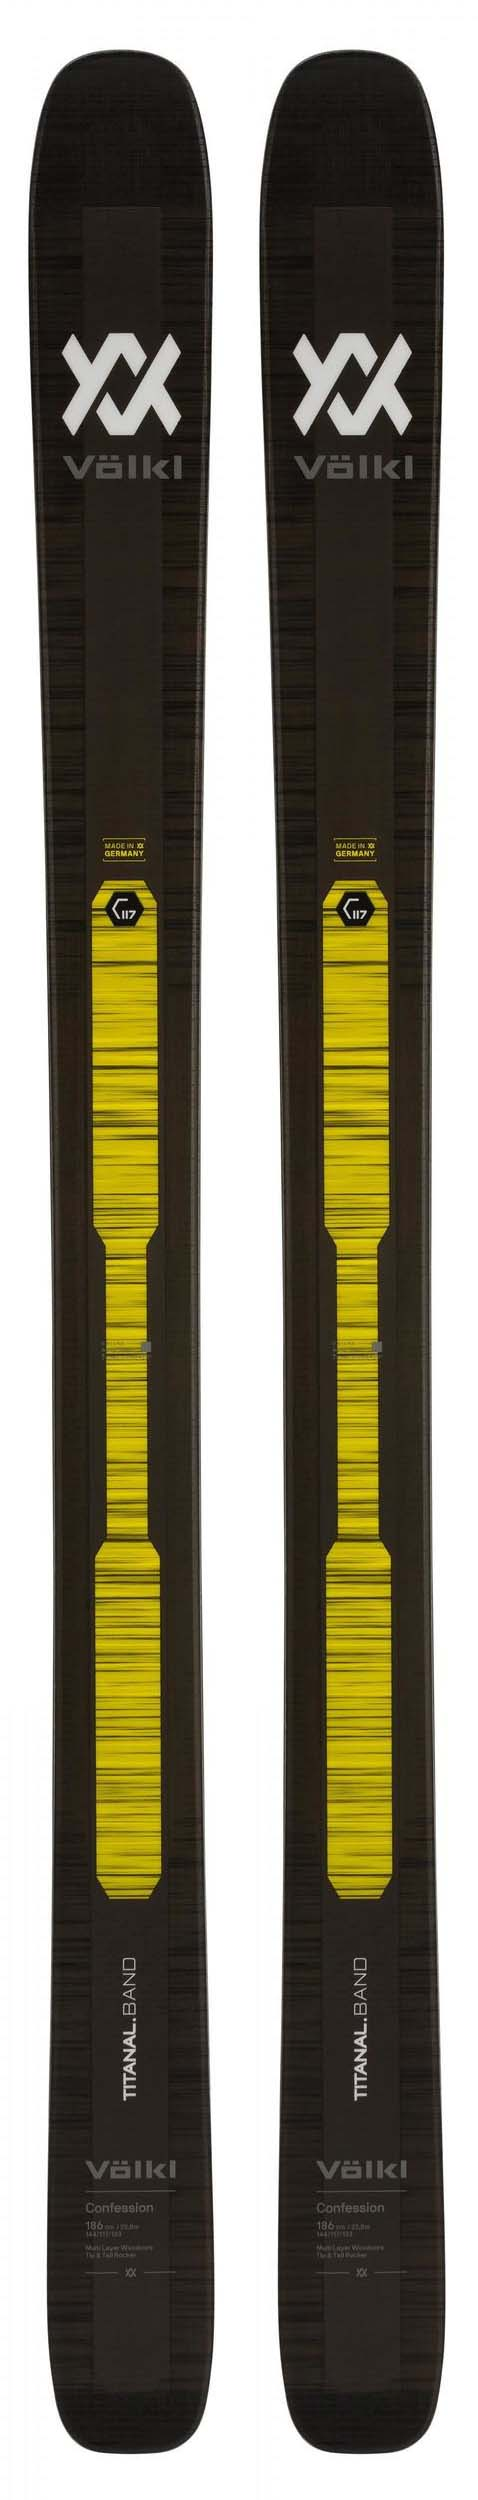 Volkl 2020 Confession Skis (Without Bindings / Flat) NEW !! 179cm